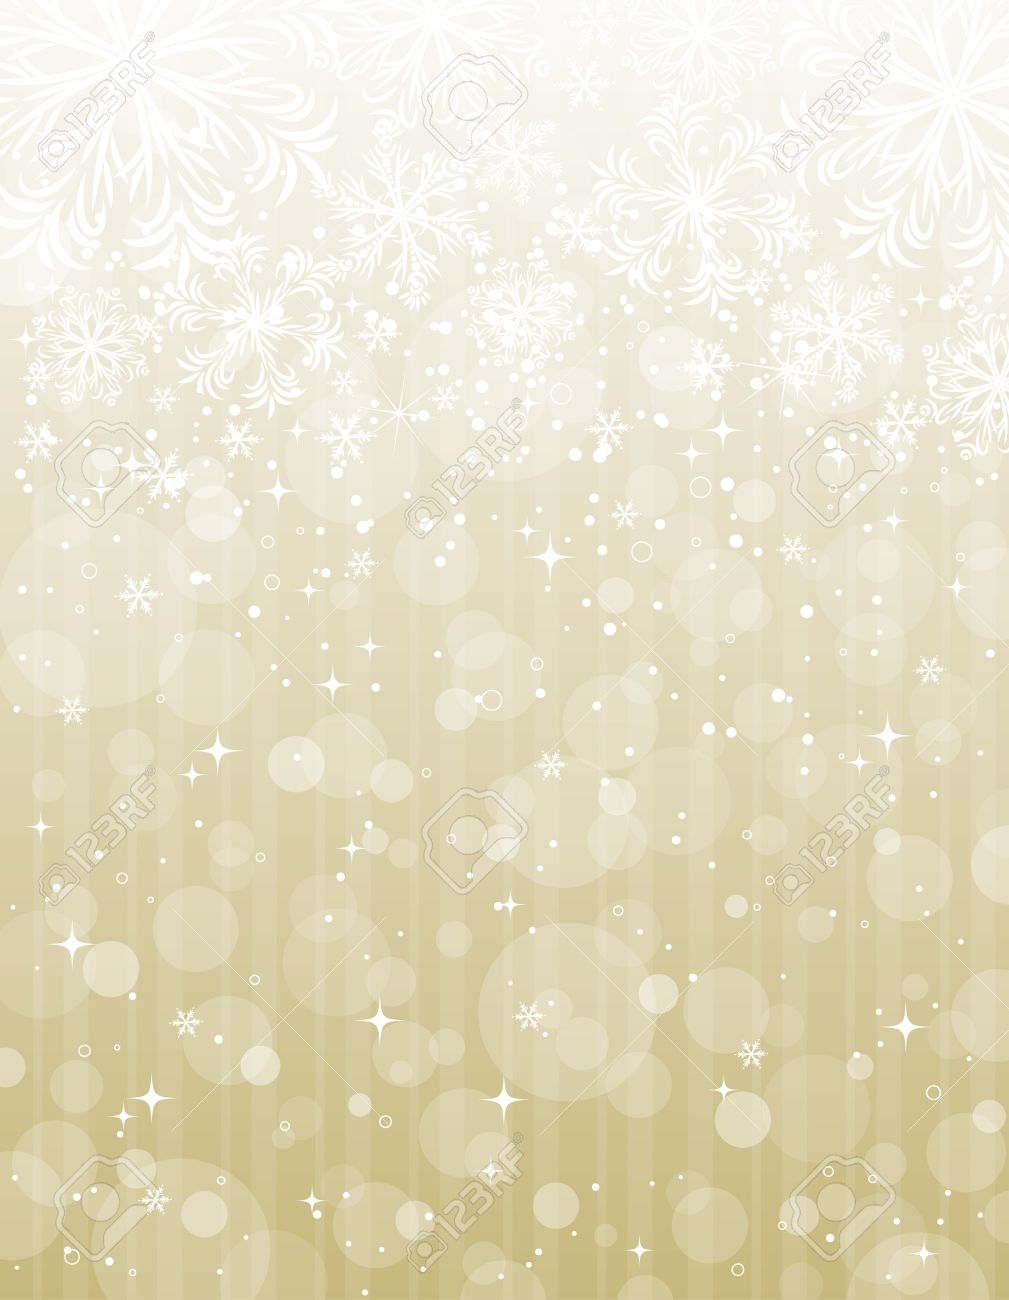 golden christmas background with snowflakes, illustration Stock Vector - 8093147